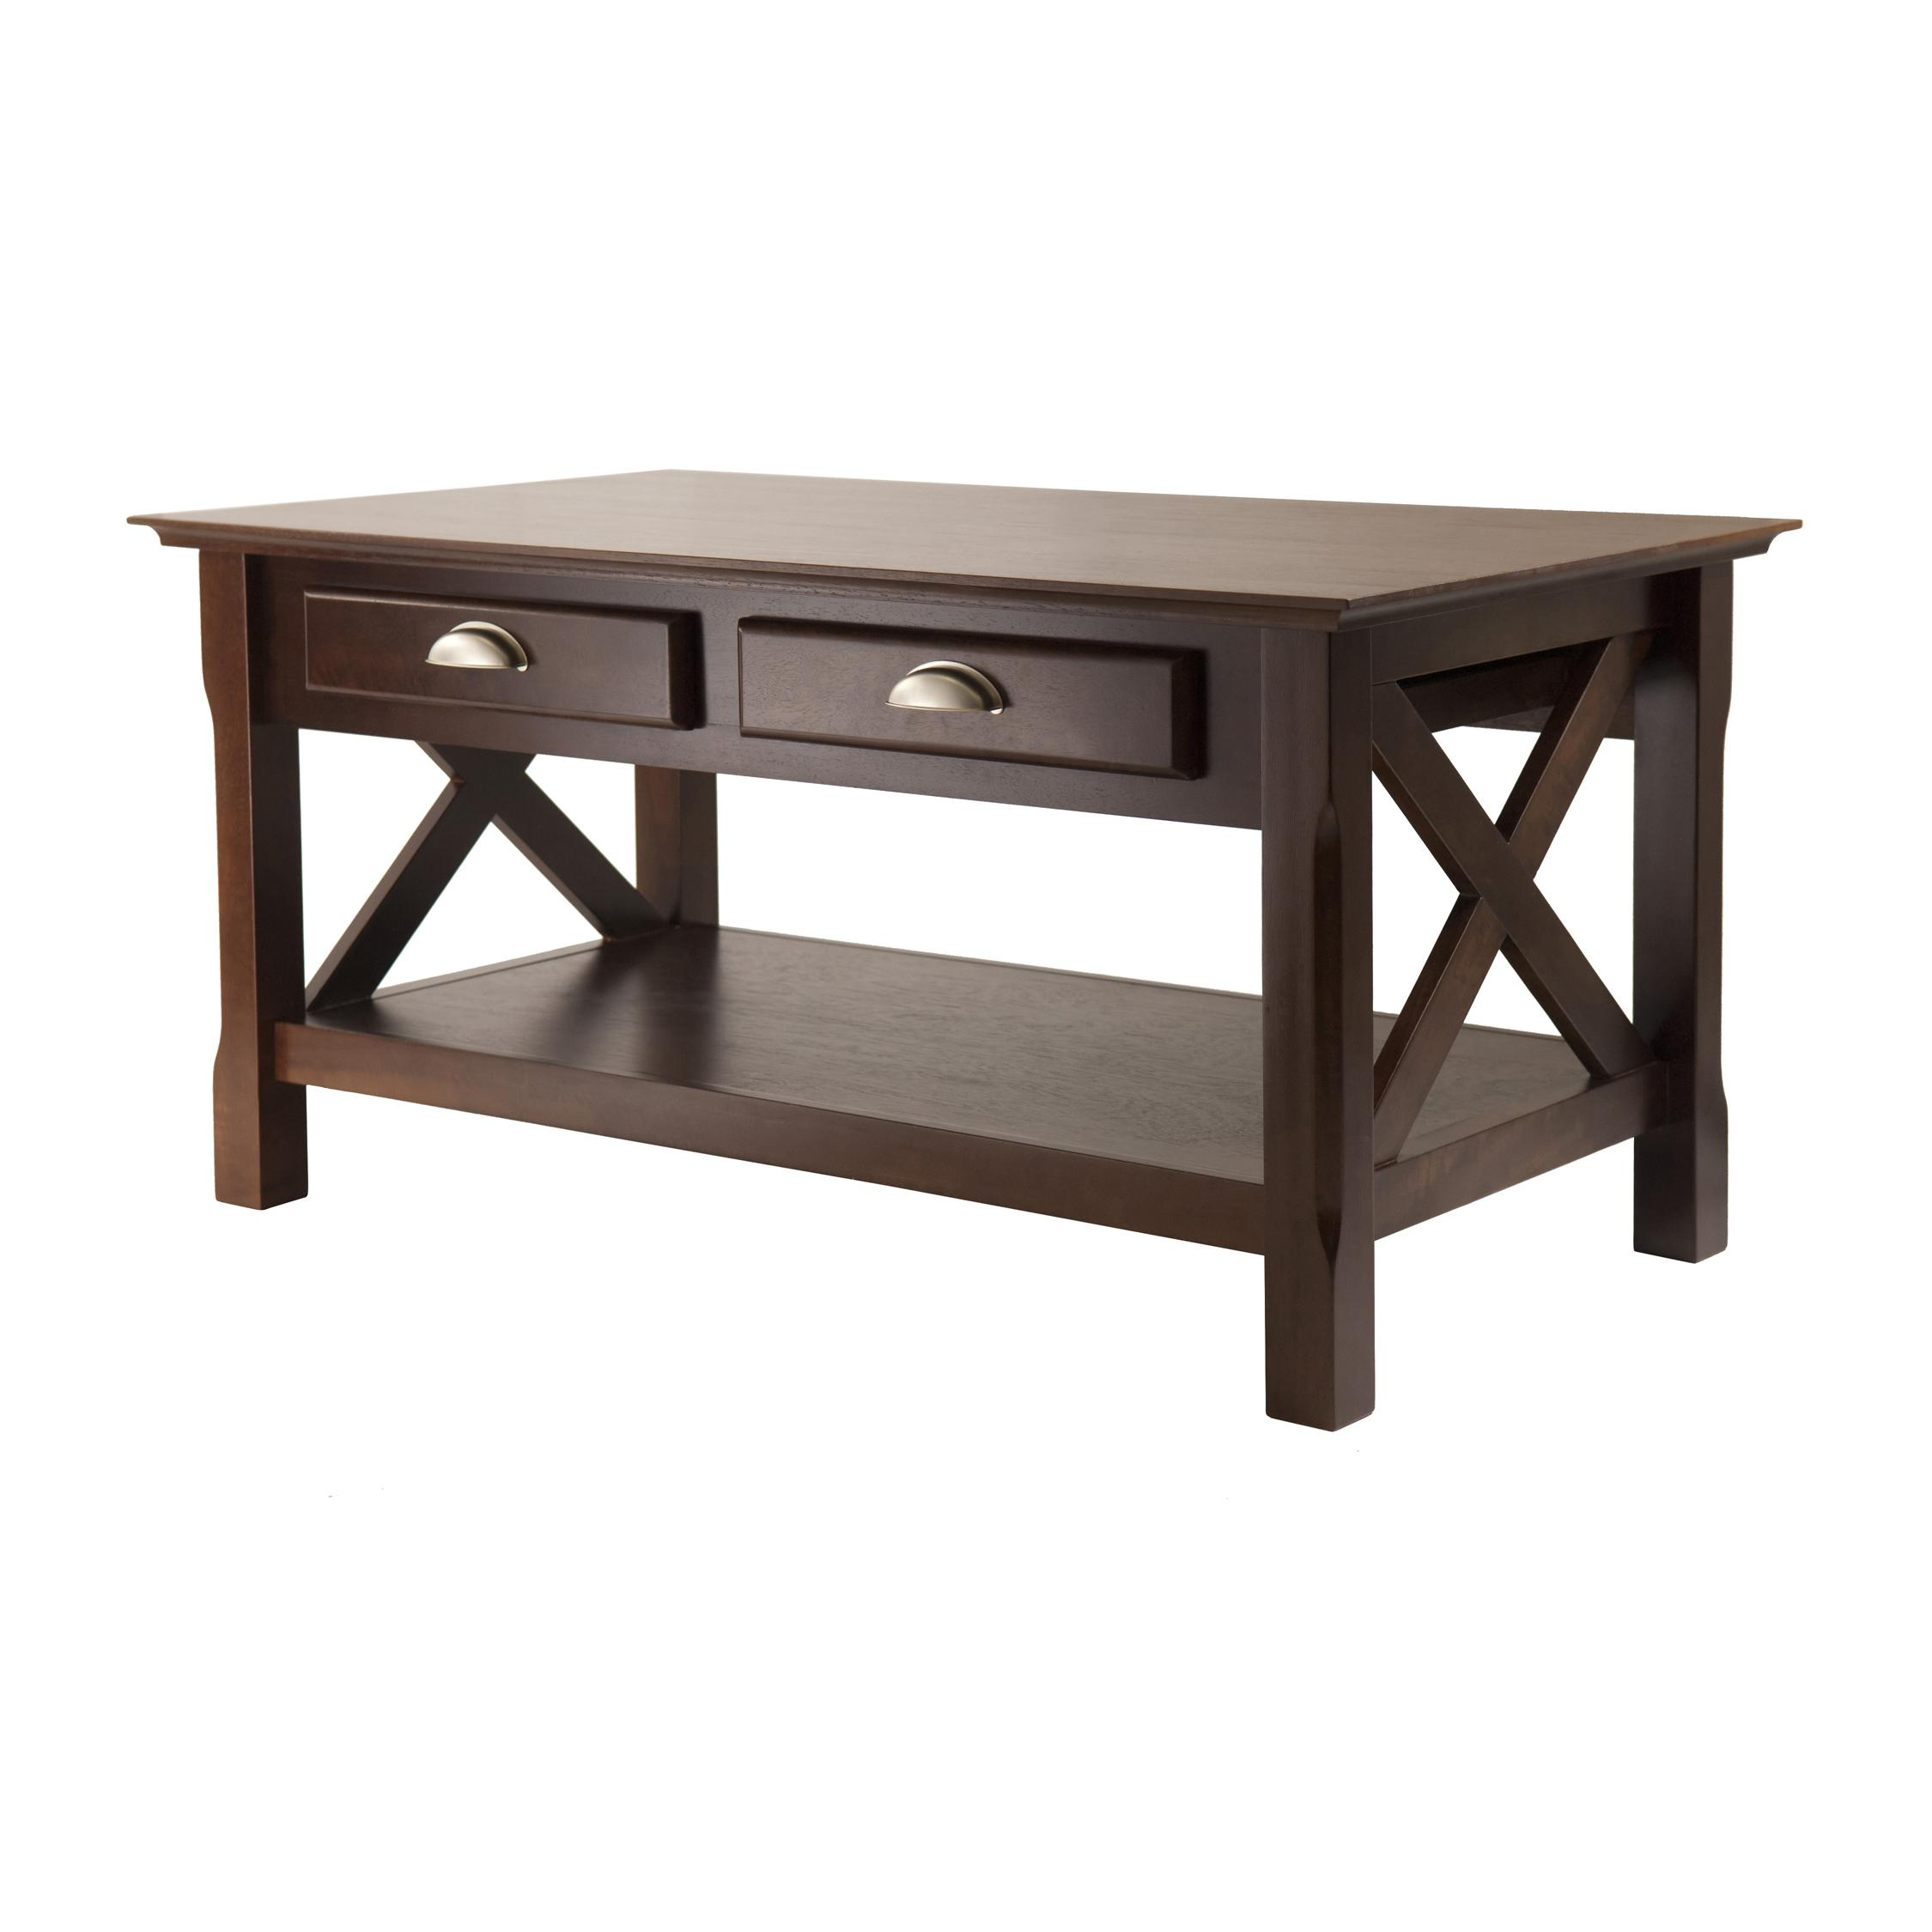 Amazon.com: Winsome Wood Xola Coffee Table, Cappuccino